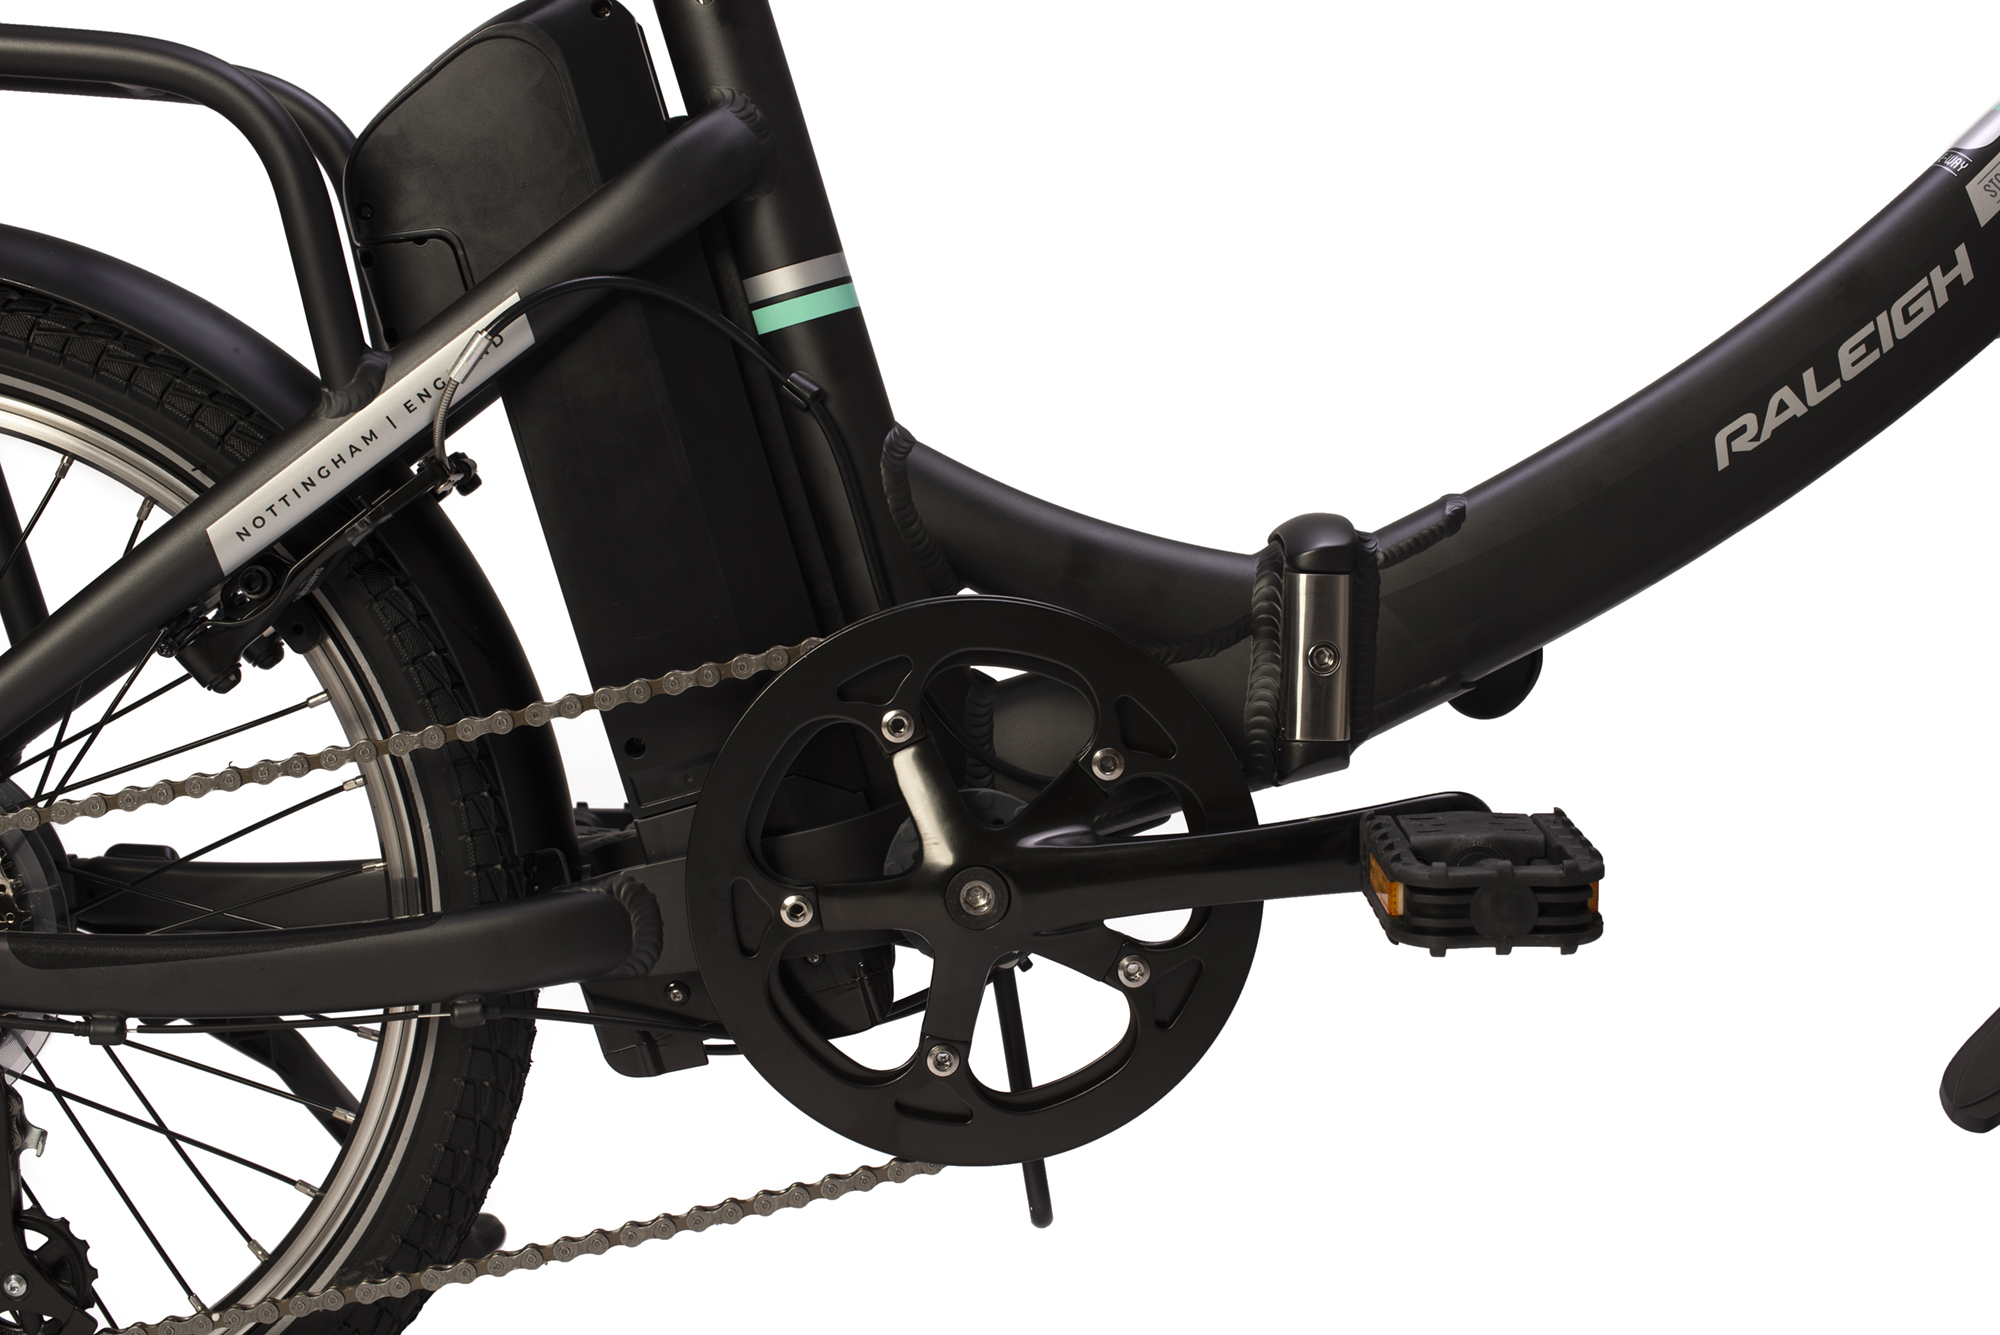 Drivetrain on the Raleigh Stow-E-way folding electric bike